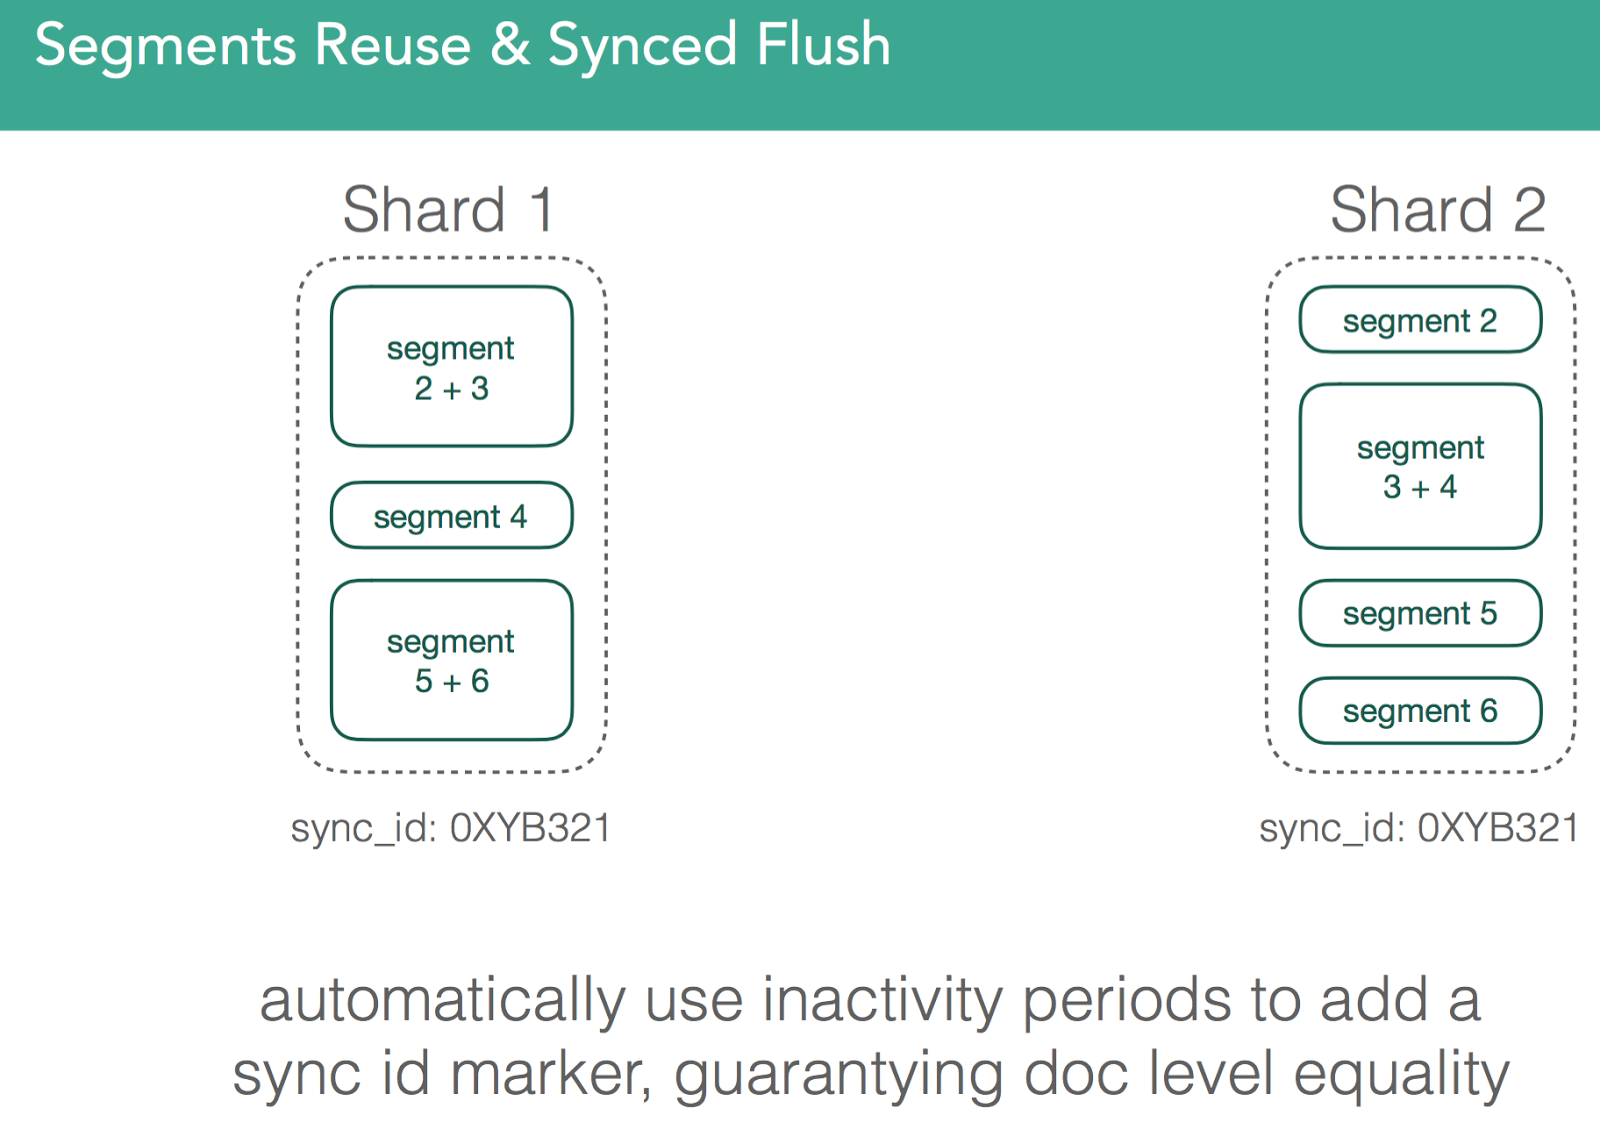 Segments Reuse and Synced Flush 2